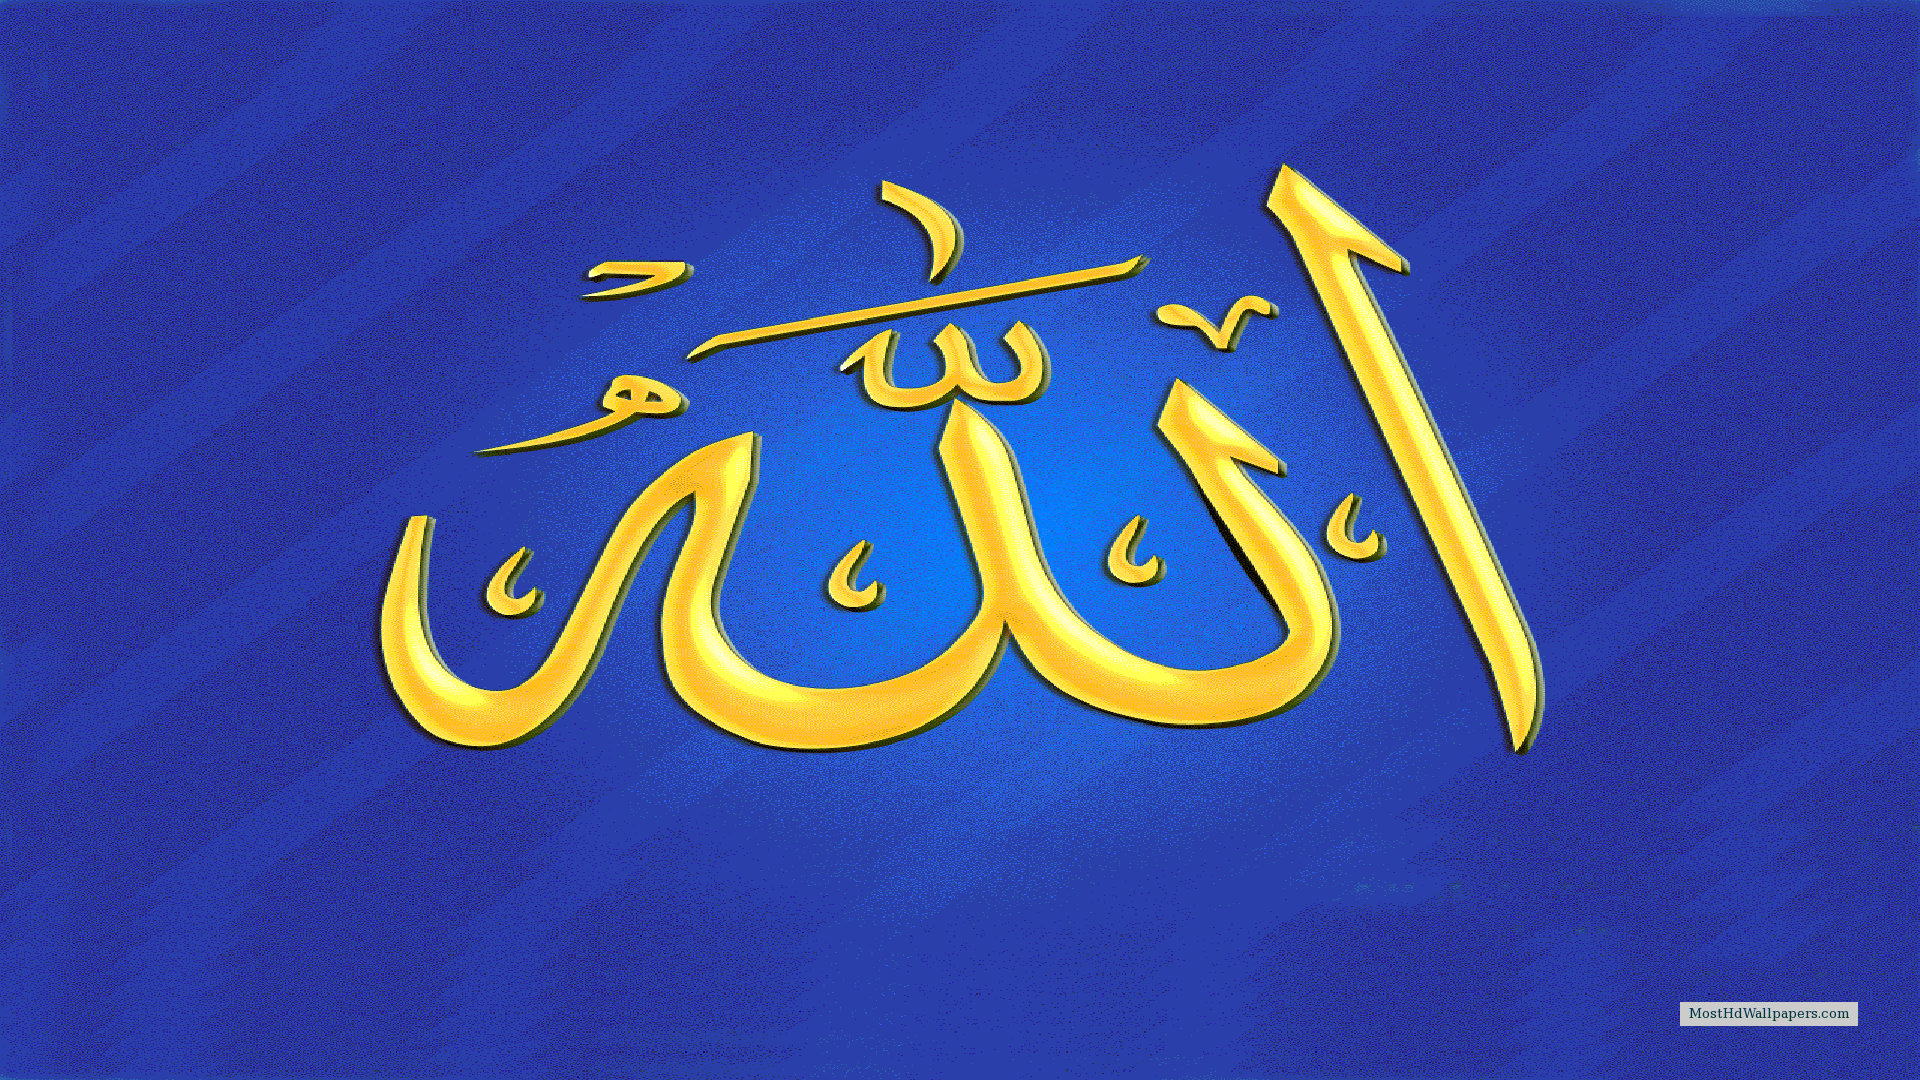 Beautiful Islamic Wallpapers Allah HD Desktop 1920x1080